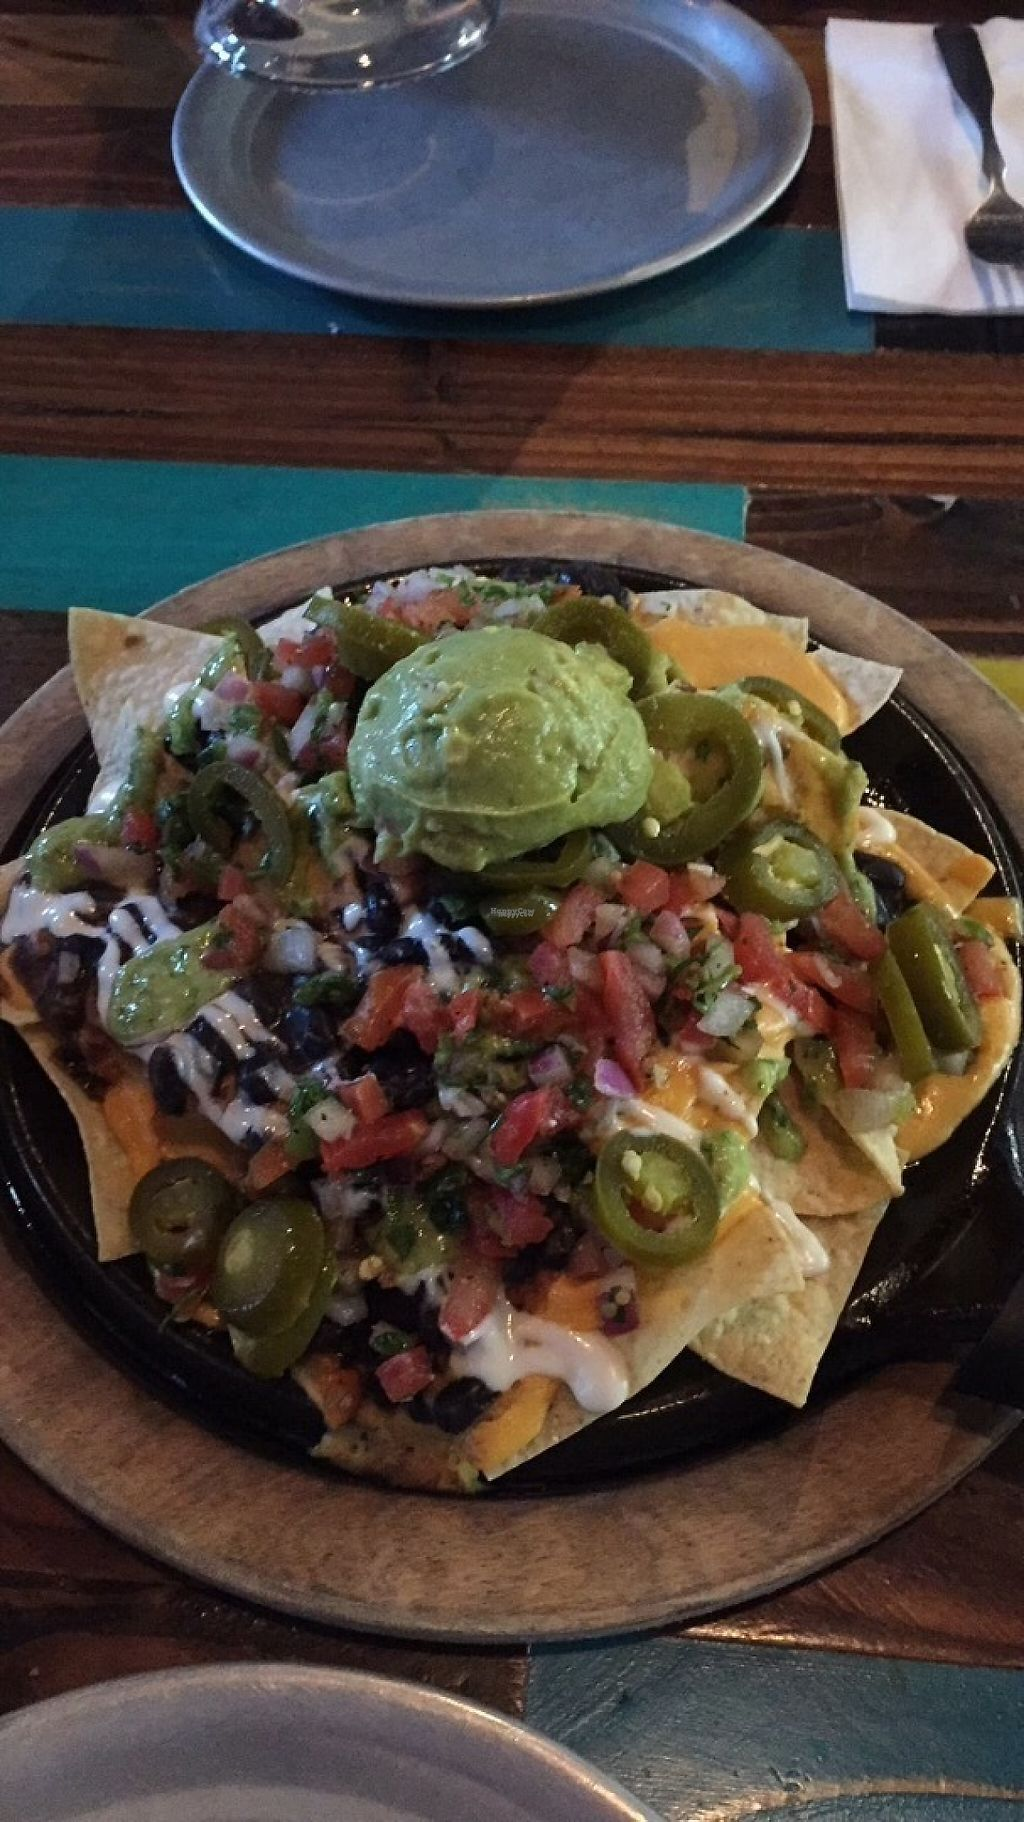 """Photo of Nacho Daddy  by <a href=""""/members/profile/AshleighWhitworth"""">AshleighWhitworth</a> <br/>Loaded nachos <br/> April 3, 2017  - <a href='/contact/abuse/image/43486/244352'>Report</a>"""